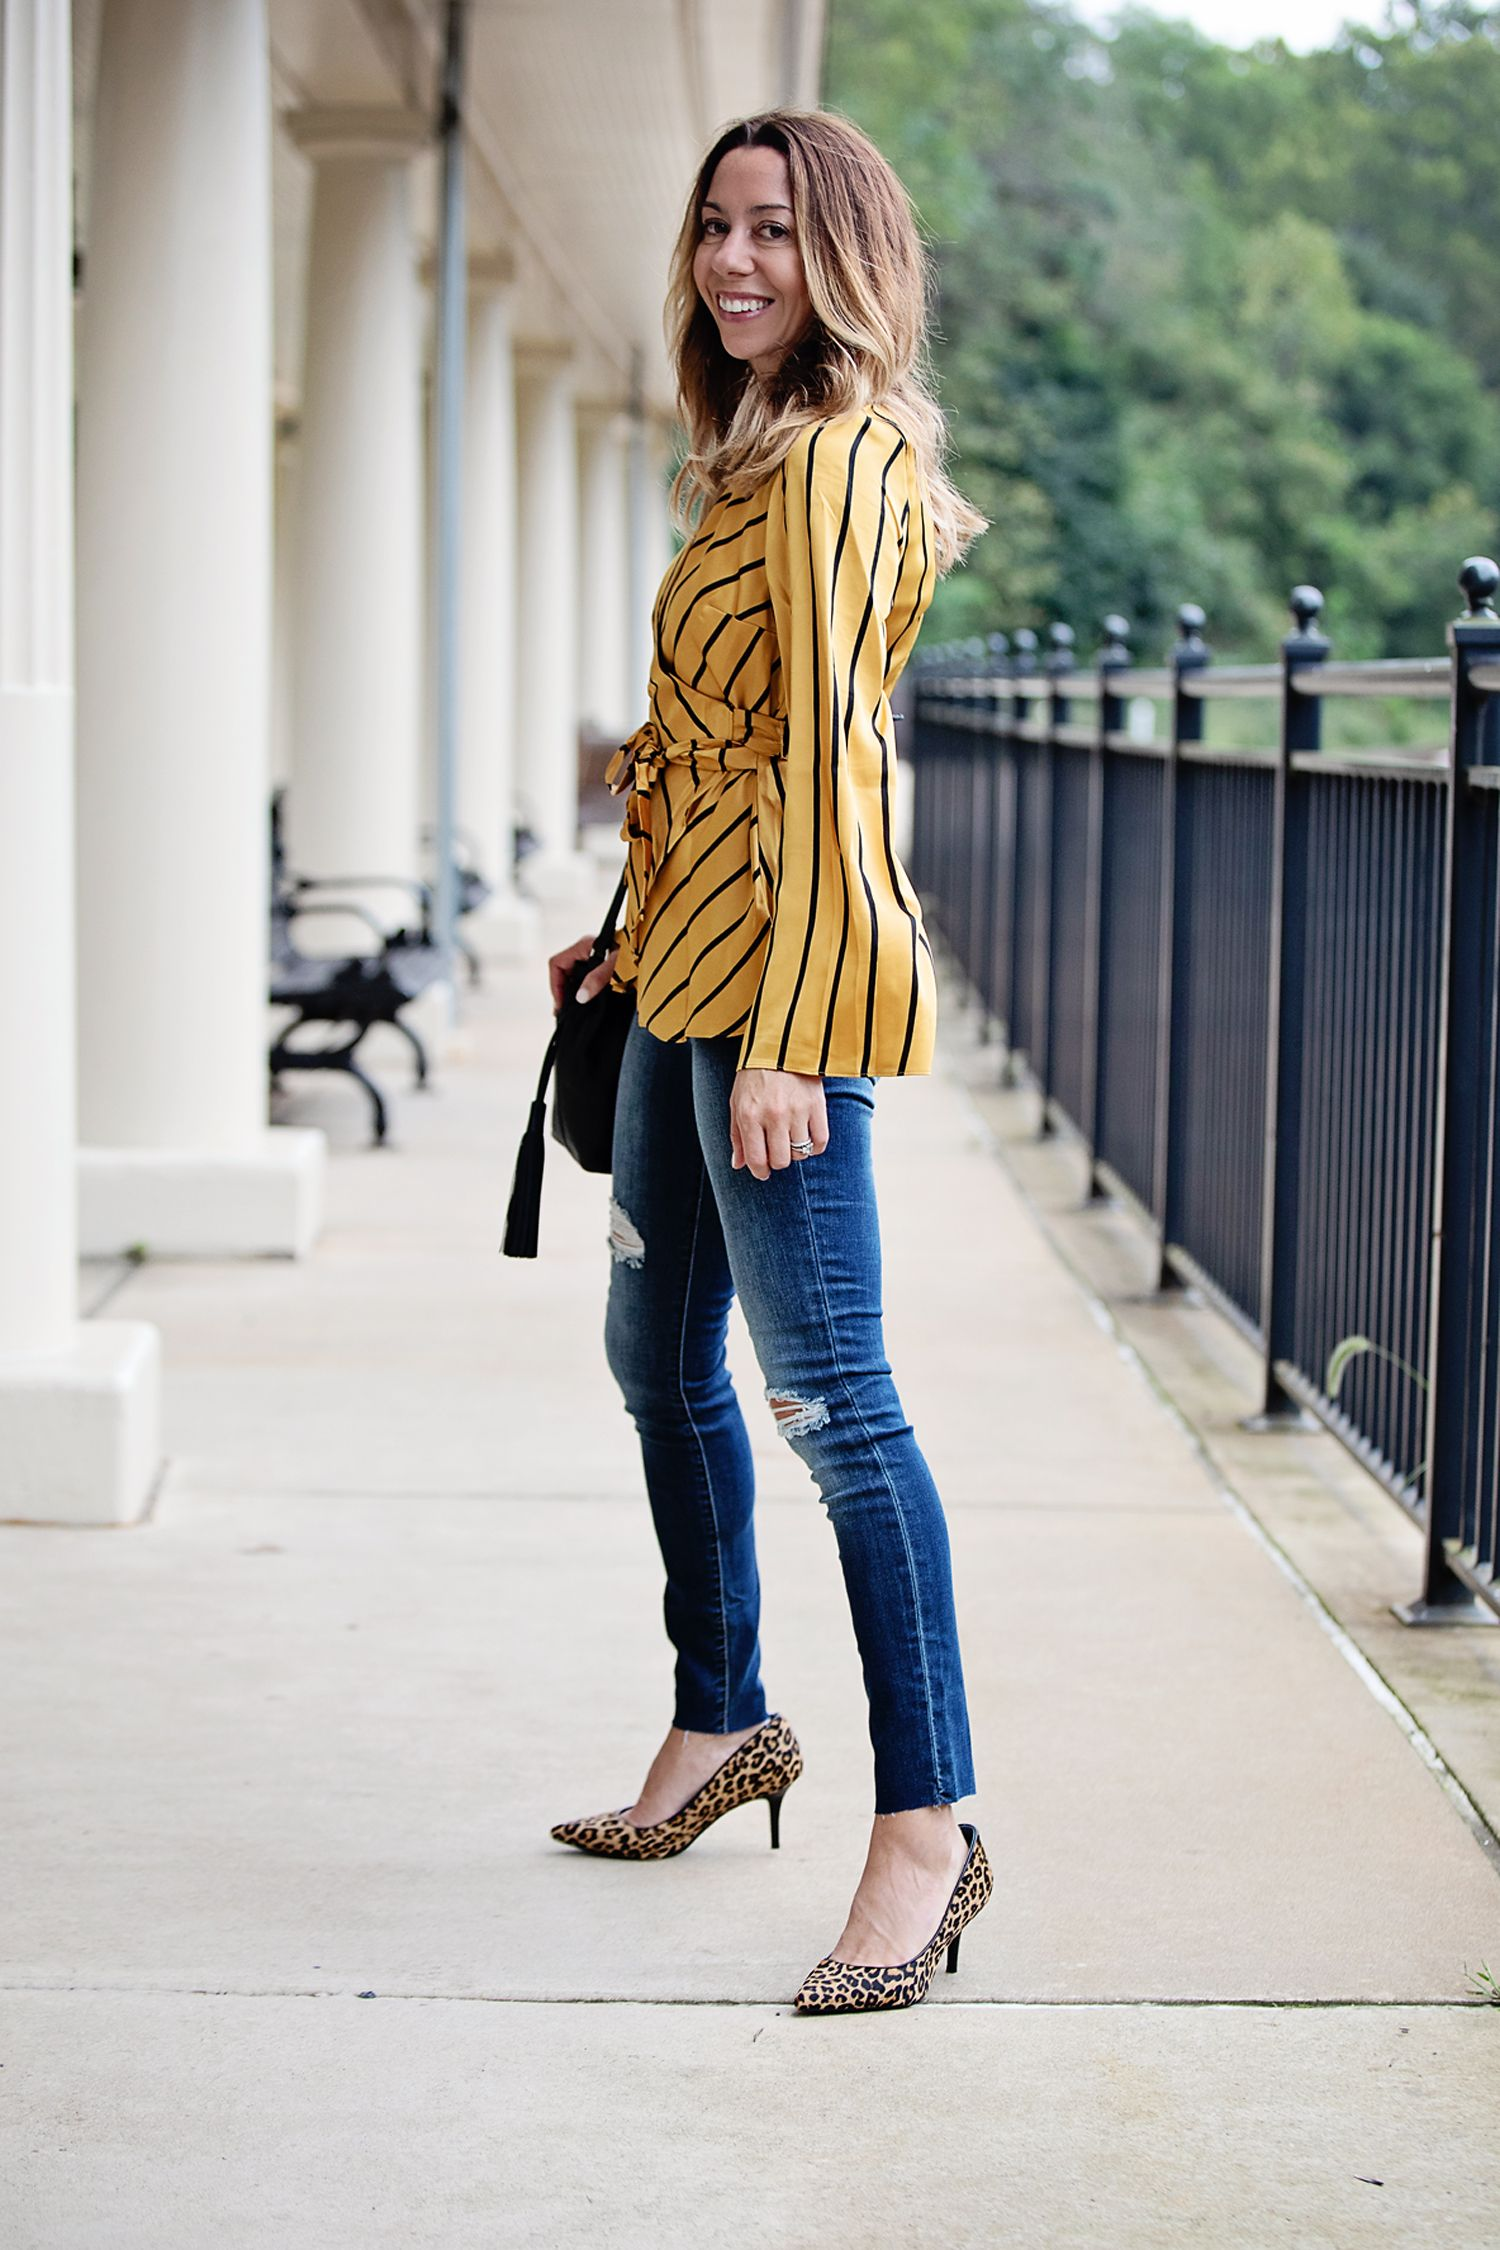 a8a2fb2f708 The motherchic wearing fall date night outfit from Macy s